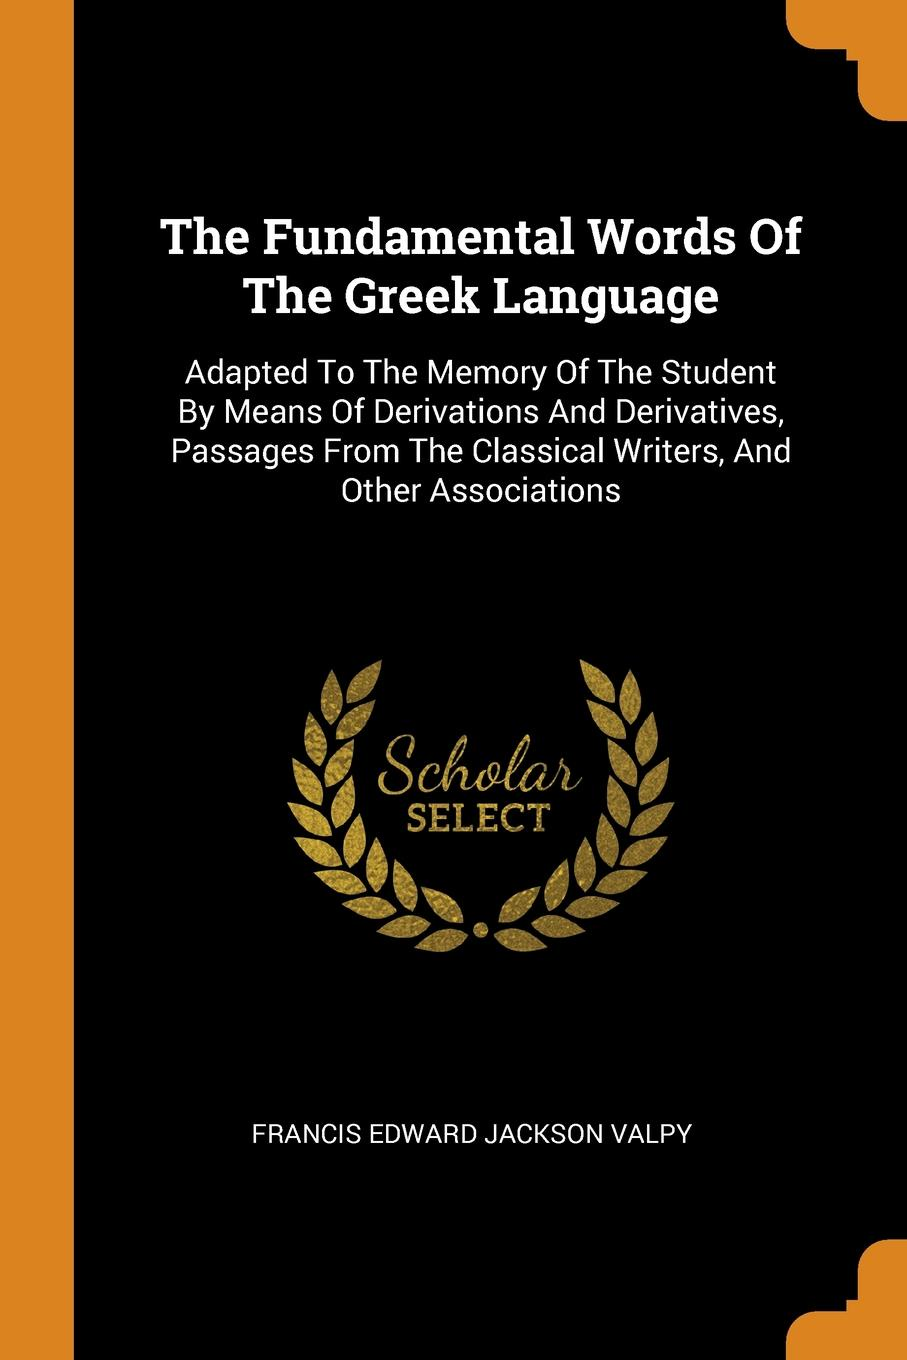 The Fundamental Words Of The Greek Language. Adapted To The Memory Of The Student By Means Of Derivations And Derivatives, Passages From The Classical Writers, And Other Associations